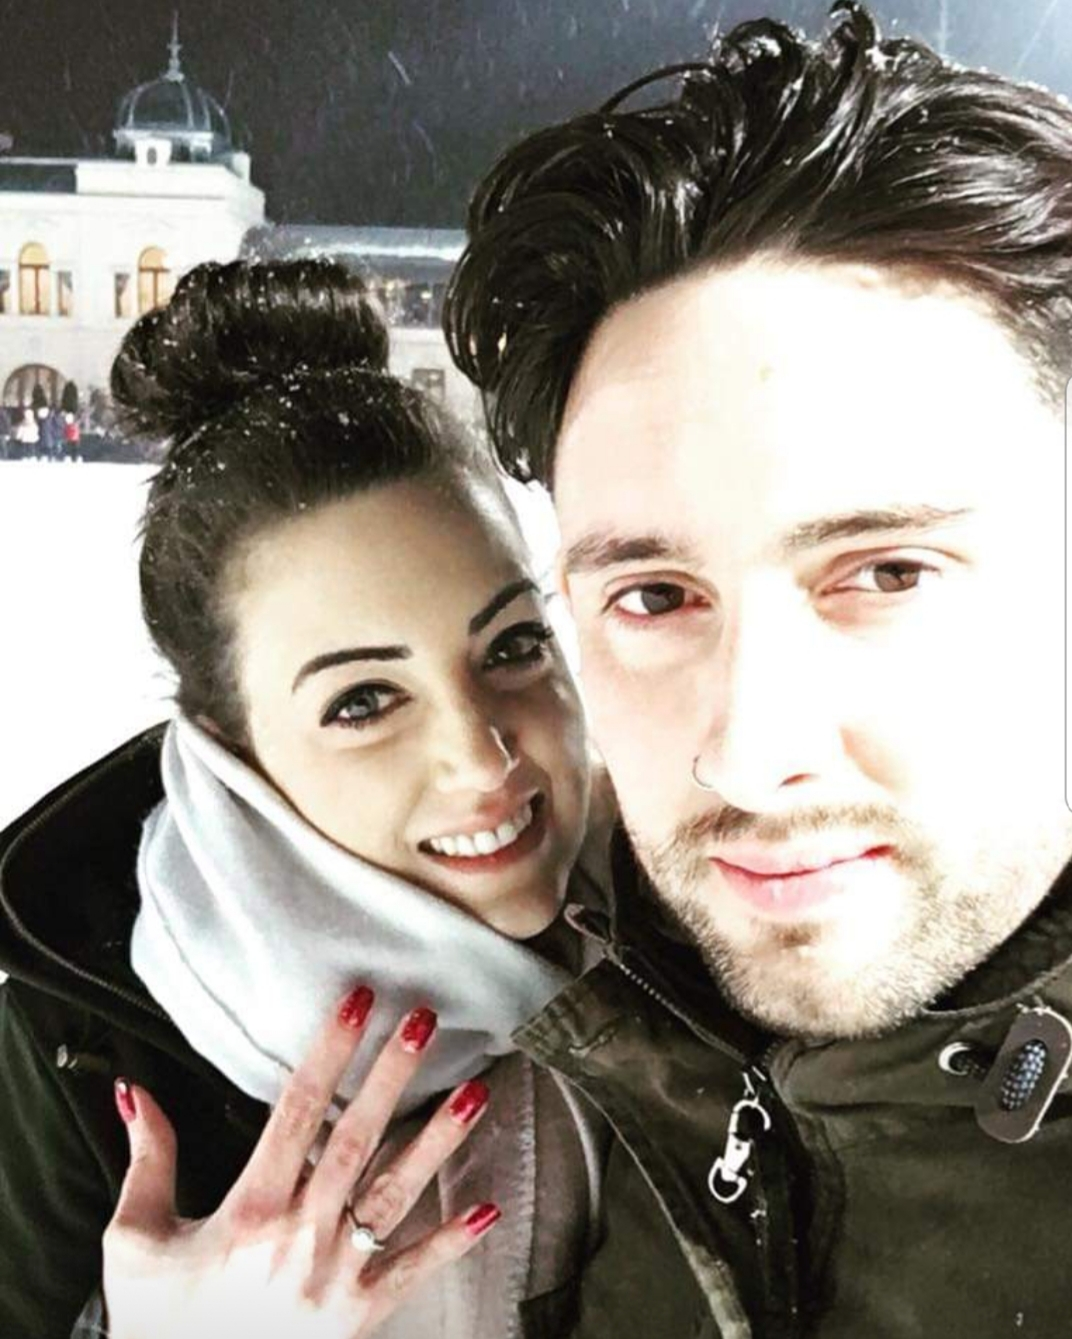 Emily poses with her engagement ring alongside Sam in the snow in Budapest